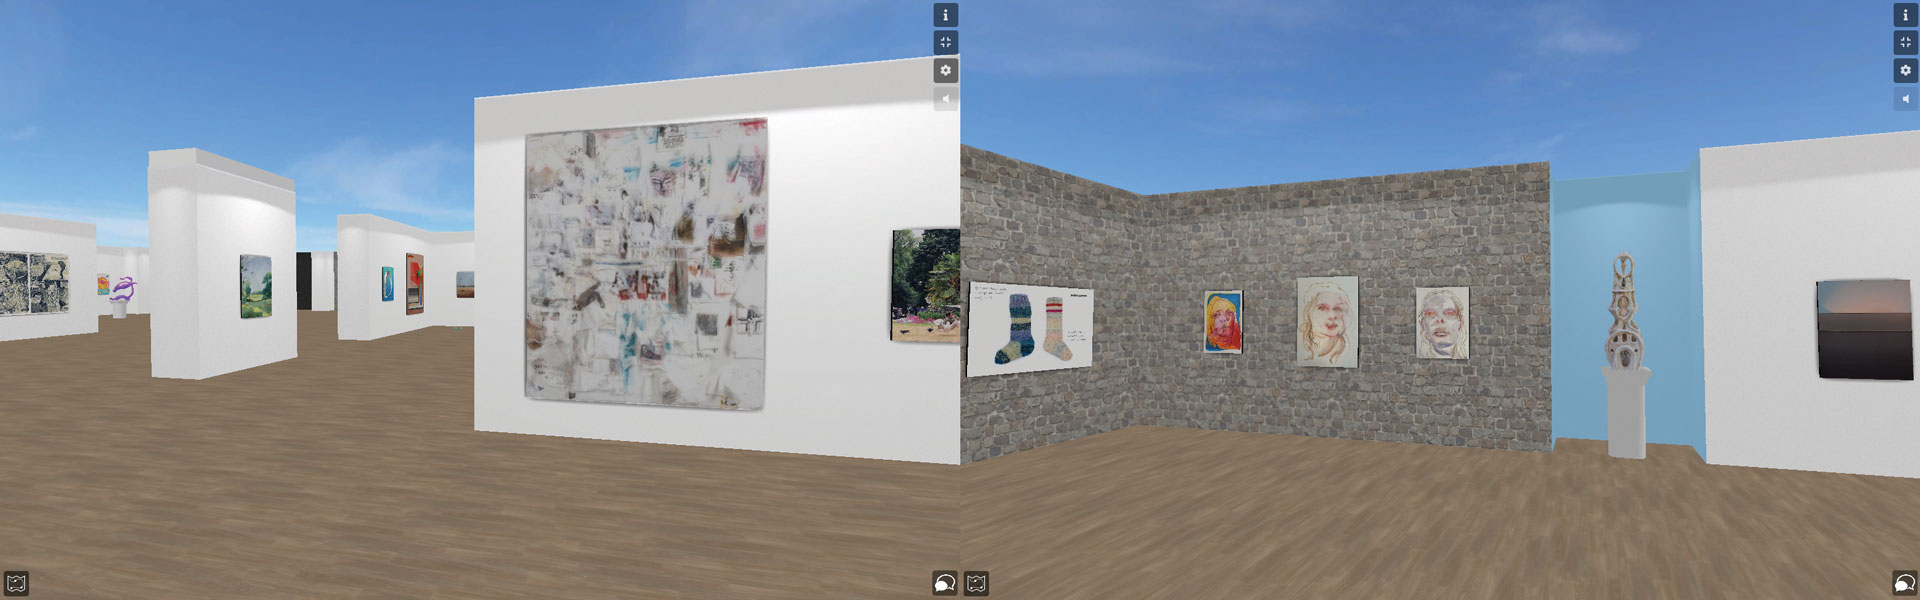 Radical Hope, 2020, installation screenshots courtesy of artists and Madeline Rupard